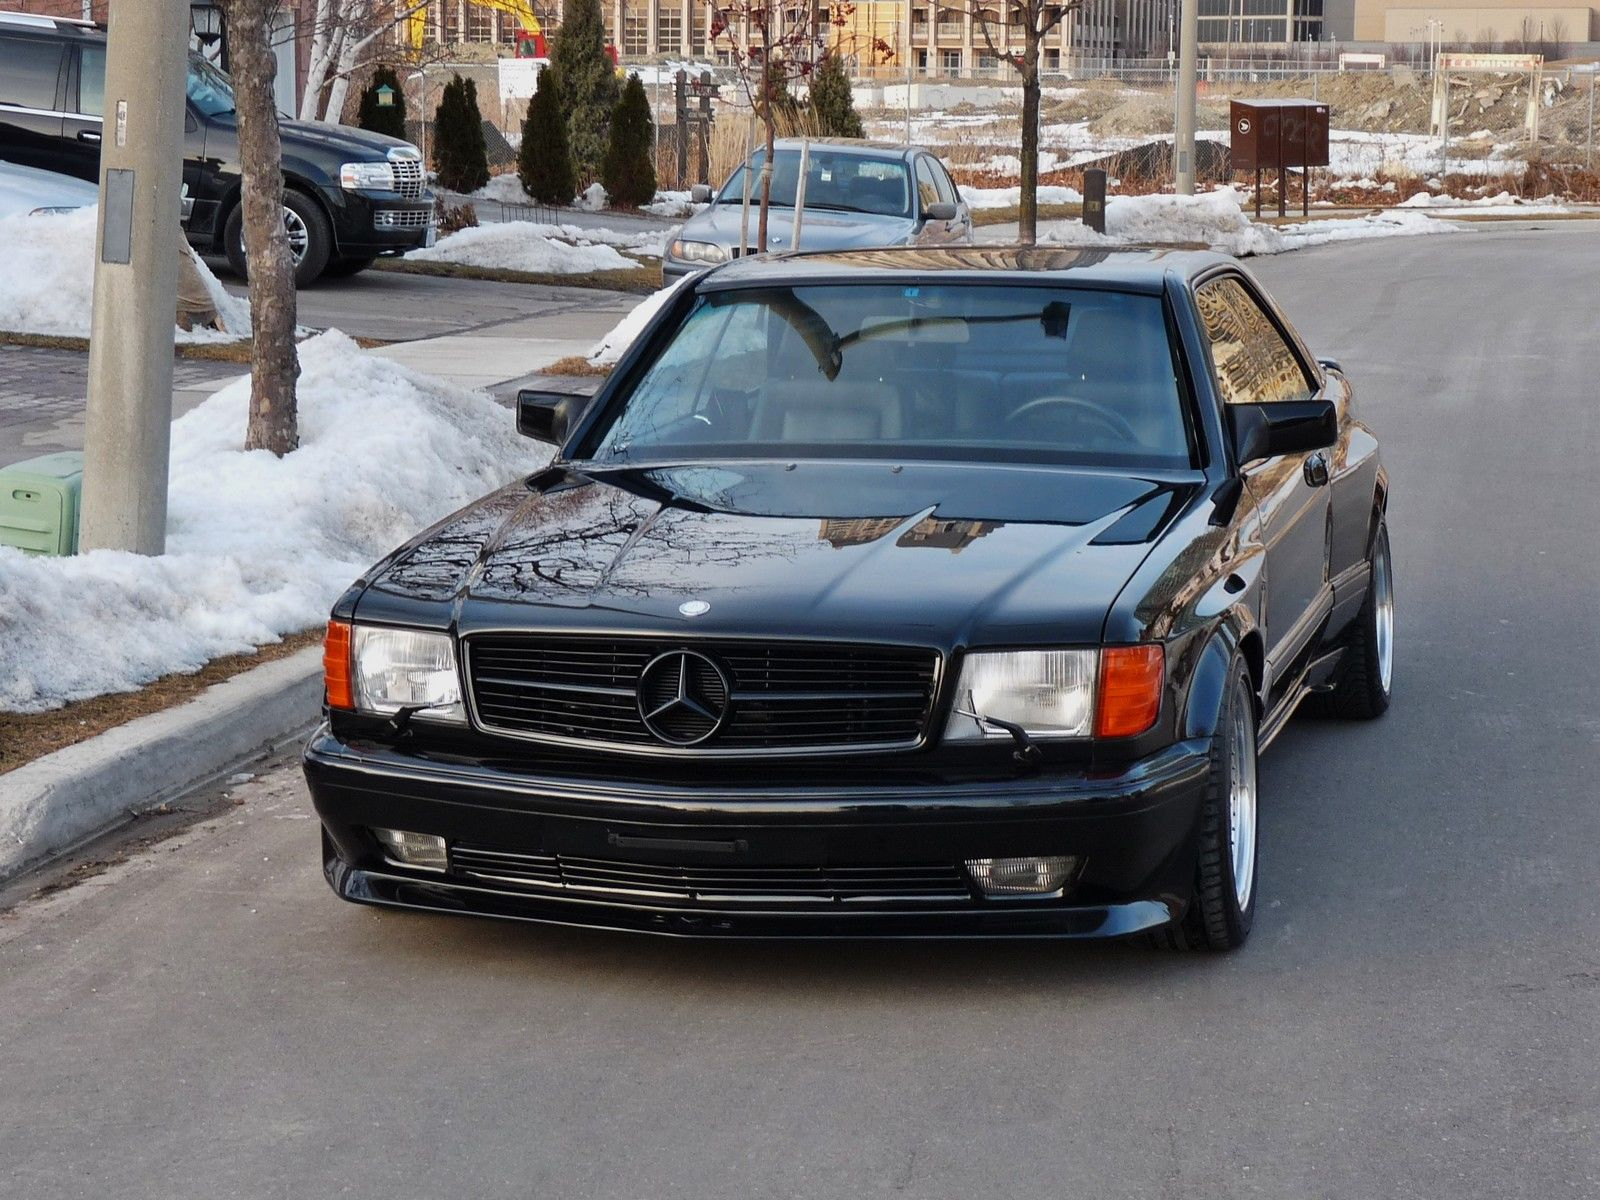 1990 mercedes benz 560sec amg 6 0 widebody 1600 x 1200 mercedes benz mercedes transmission [ 1600 x 1200 Pixel ]